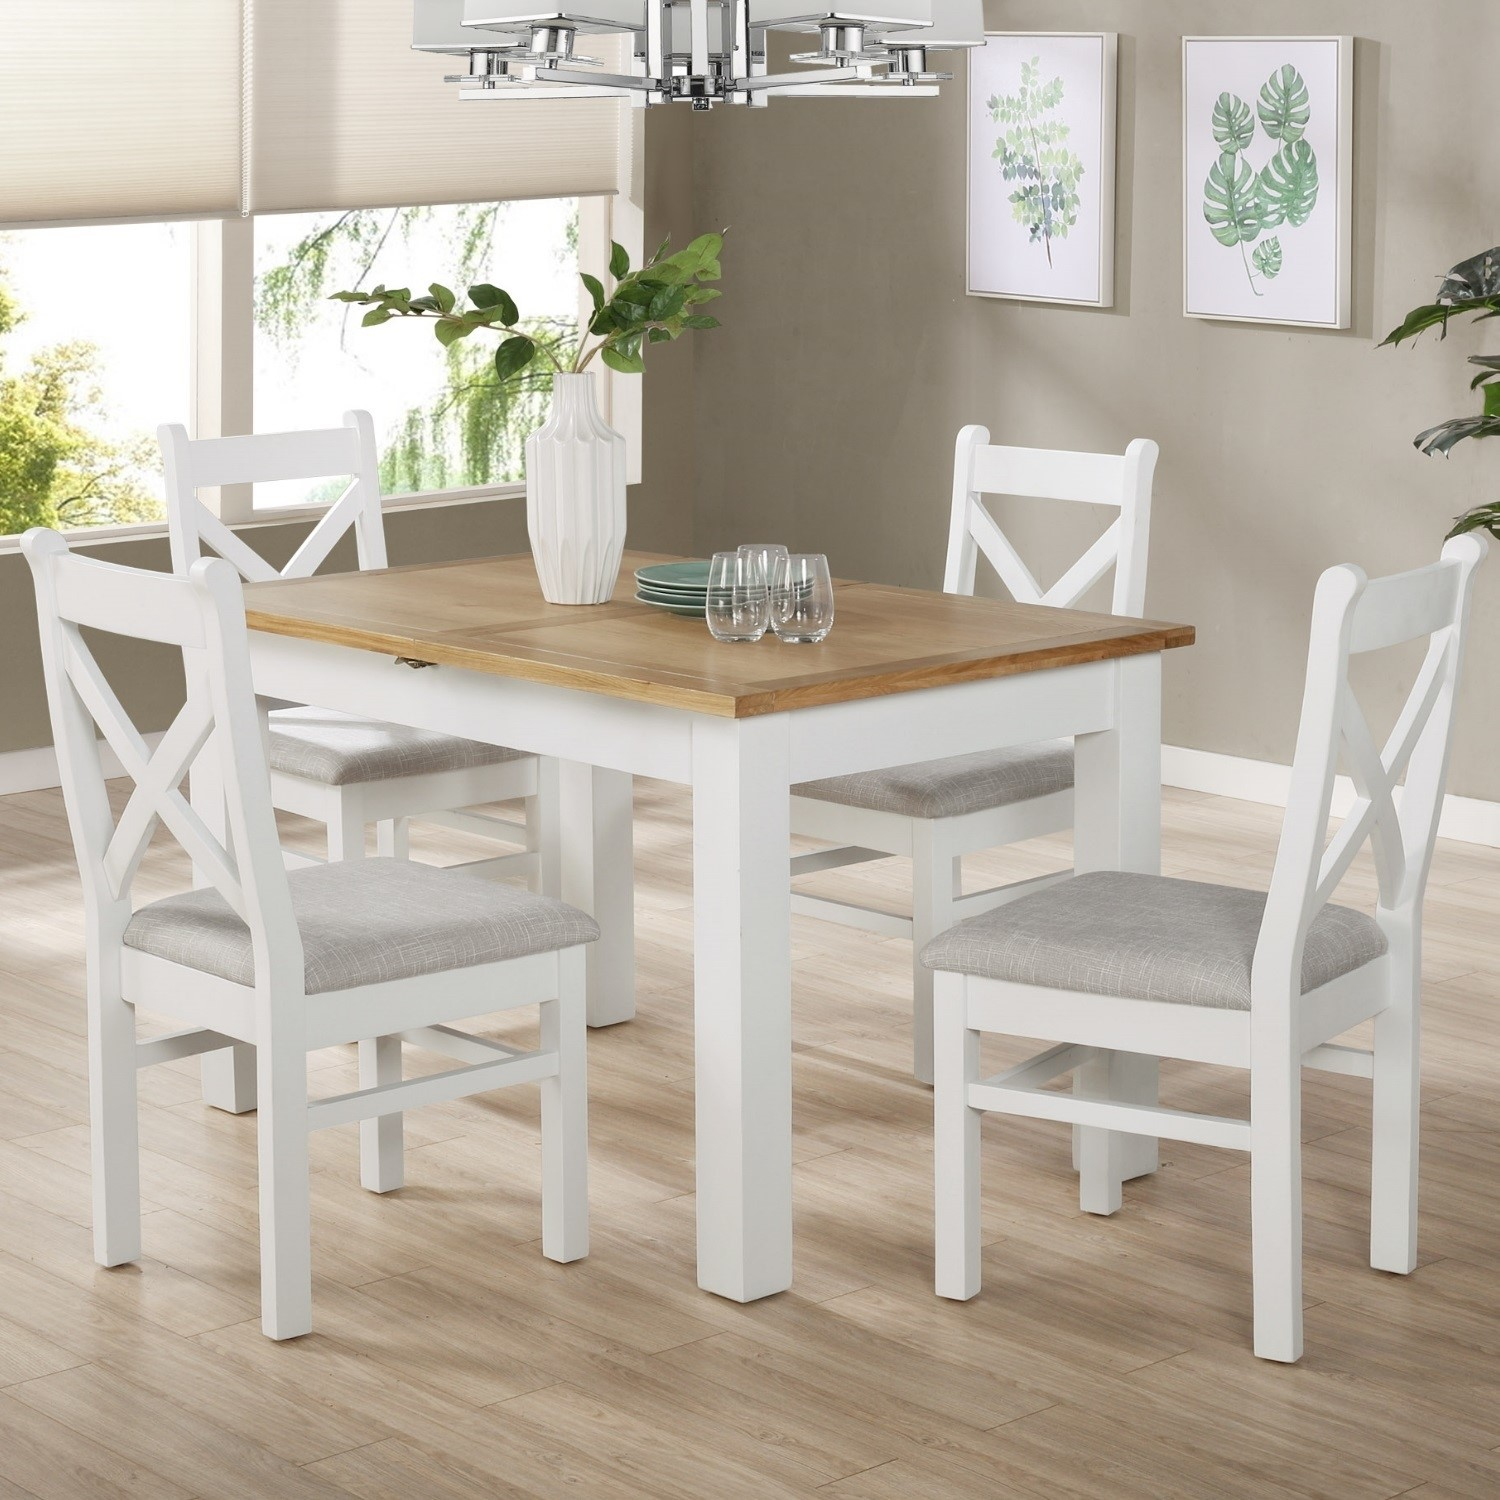 White Extendable Dining Table in Solid Wood with an Oak Top - Aylesbury